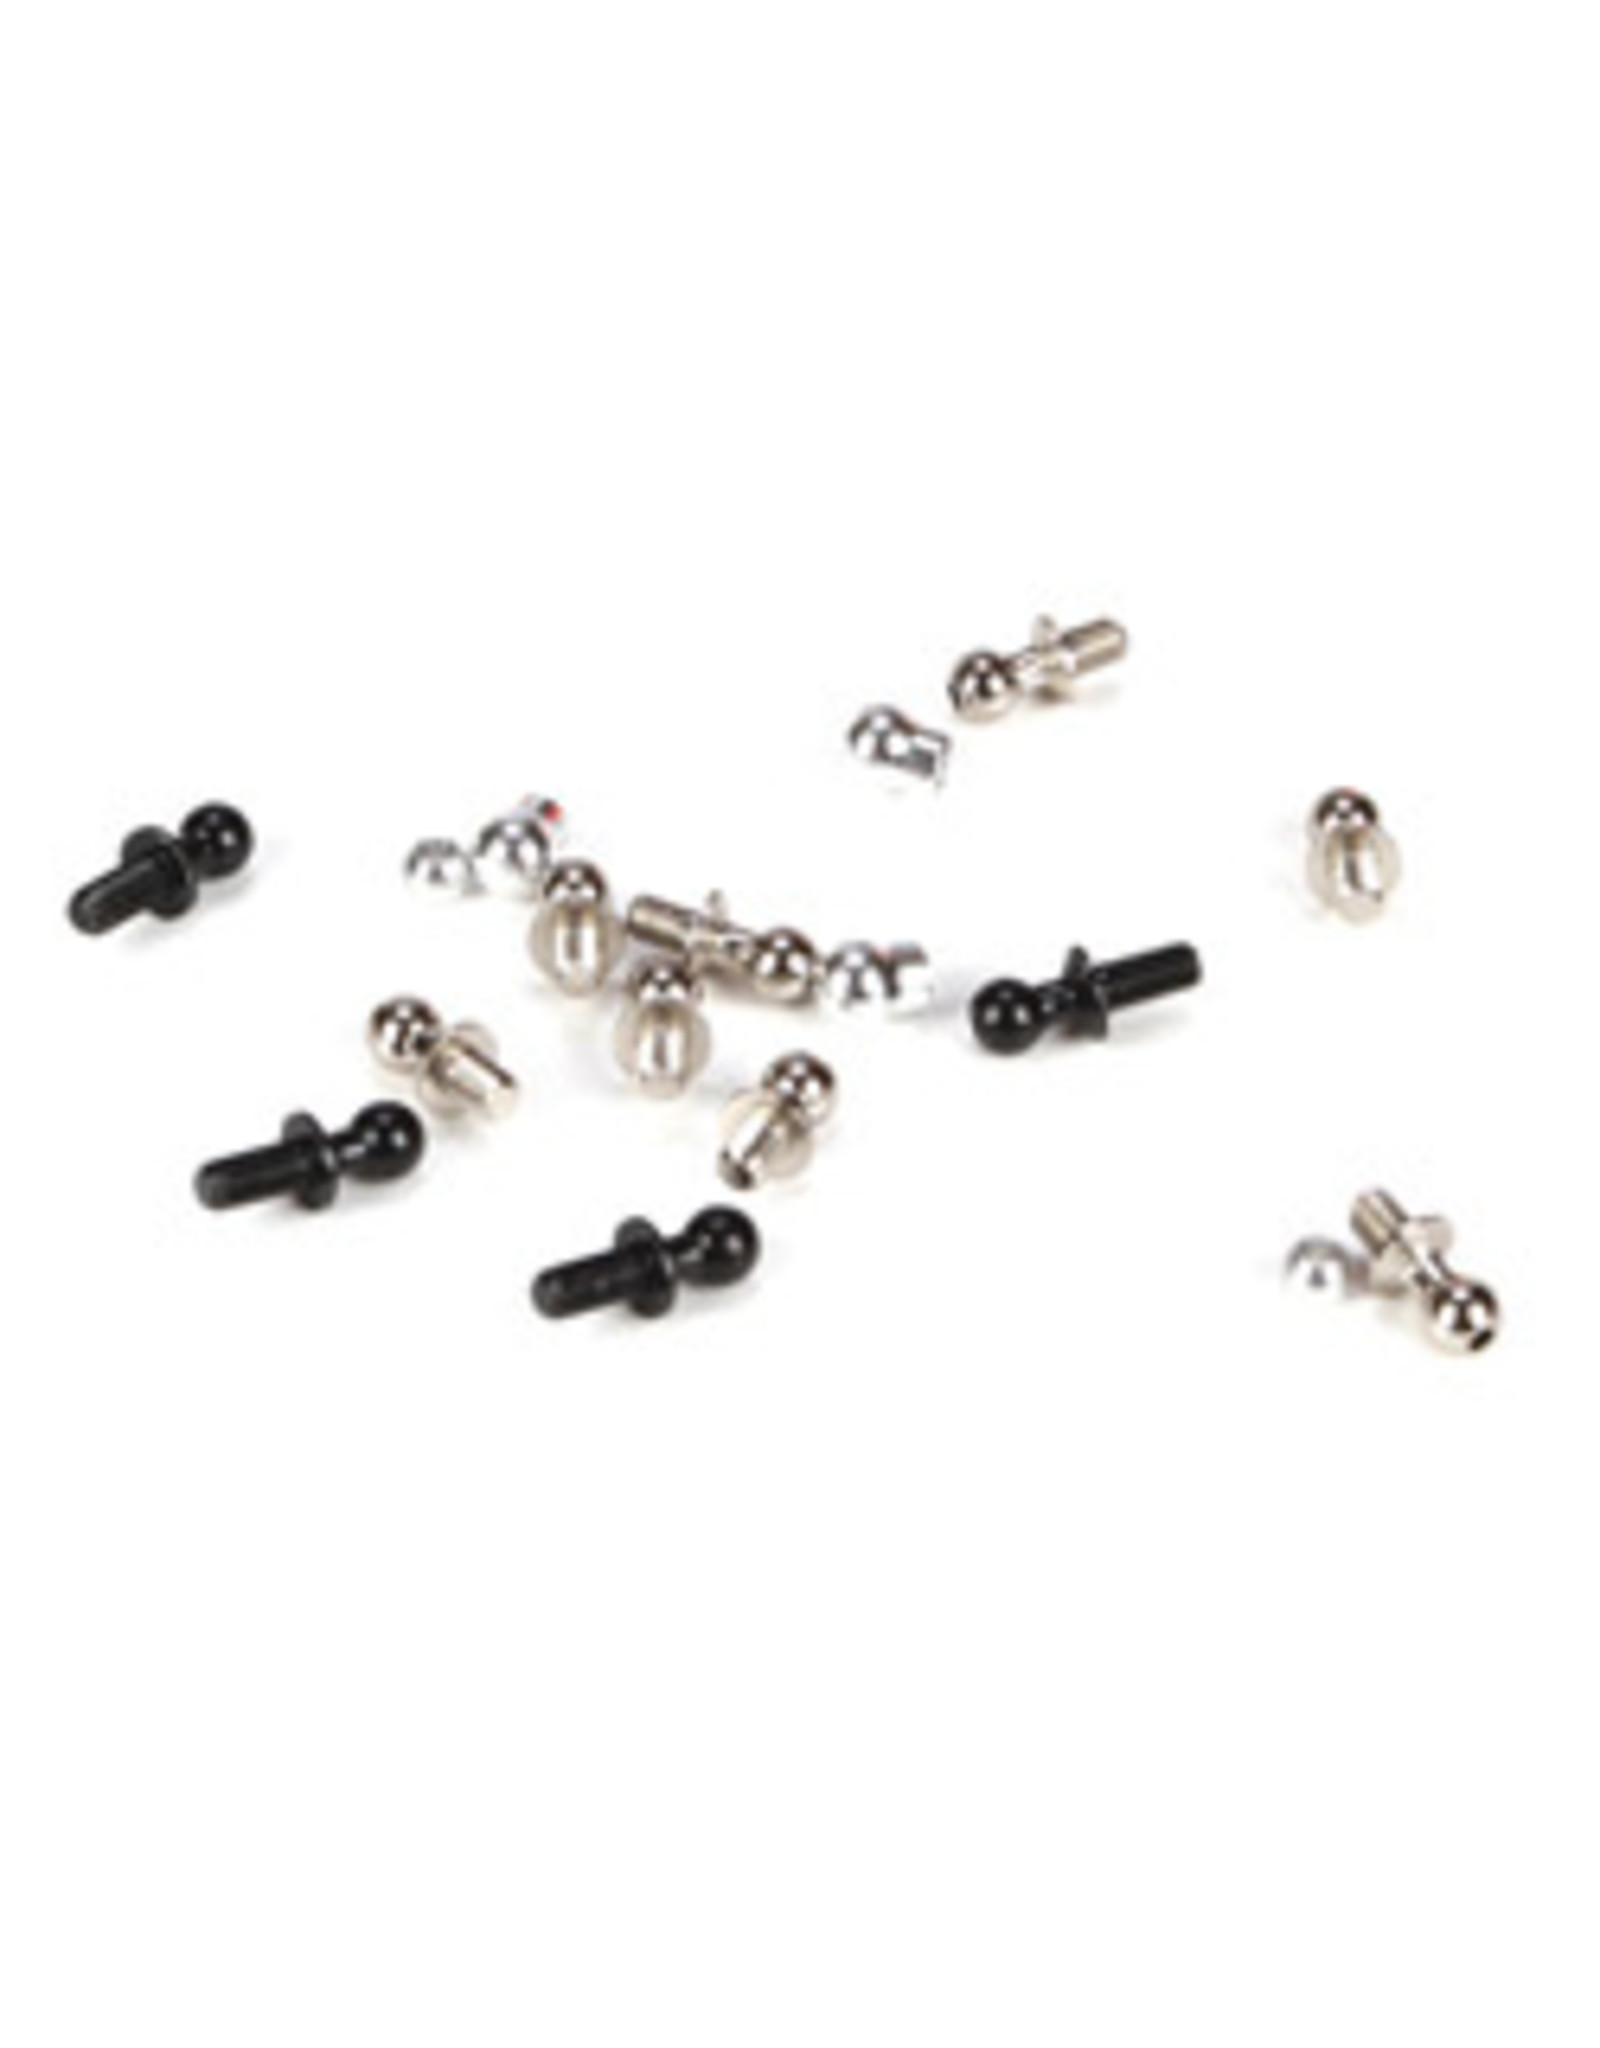 Losi Ball Stud Set: Mini 8IGHT  (LOSB1891)